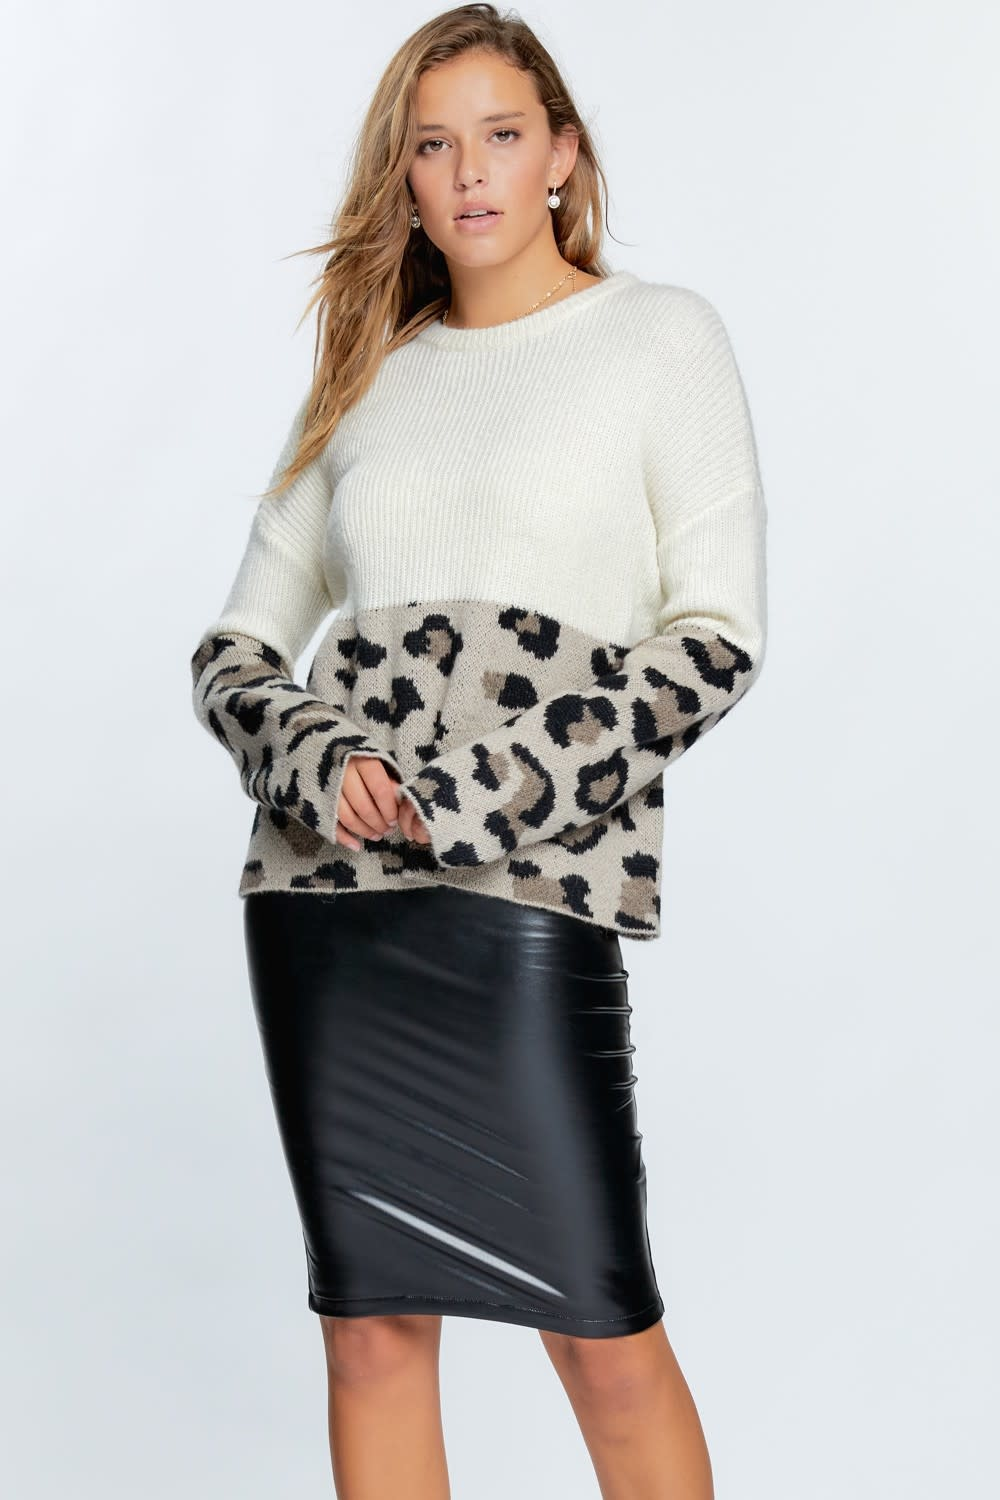 In Line With Style Color Block Sweater